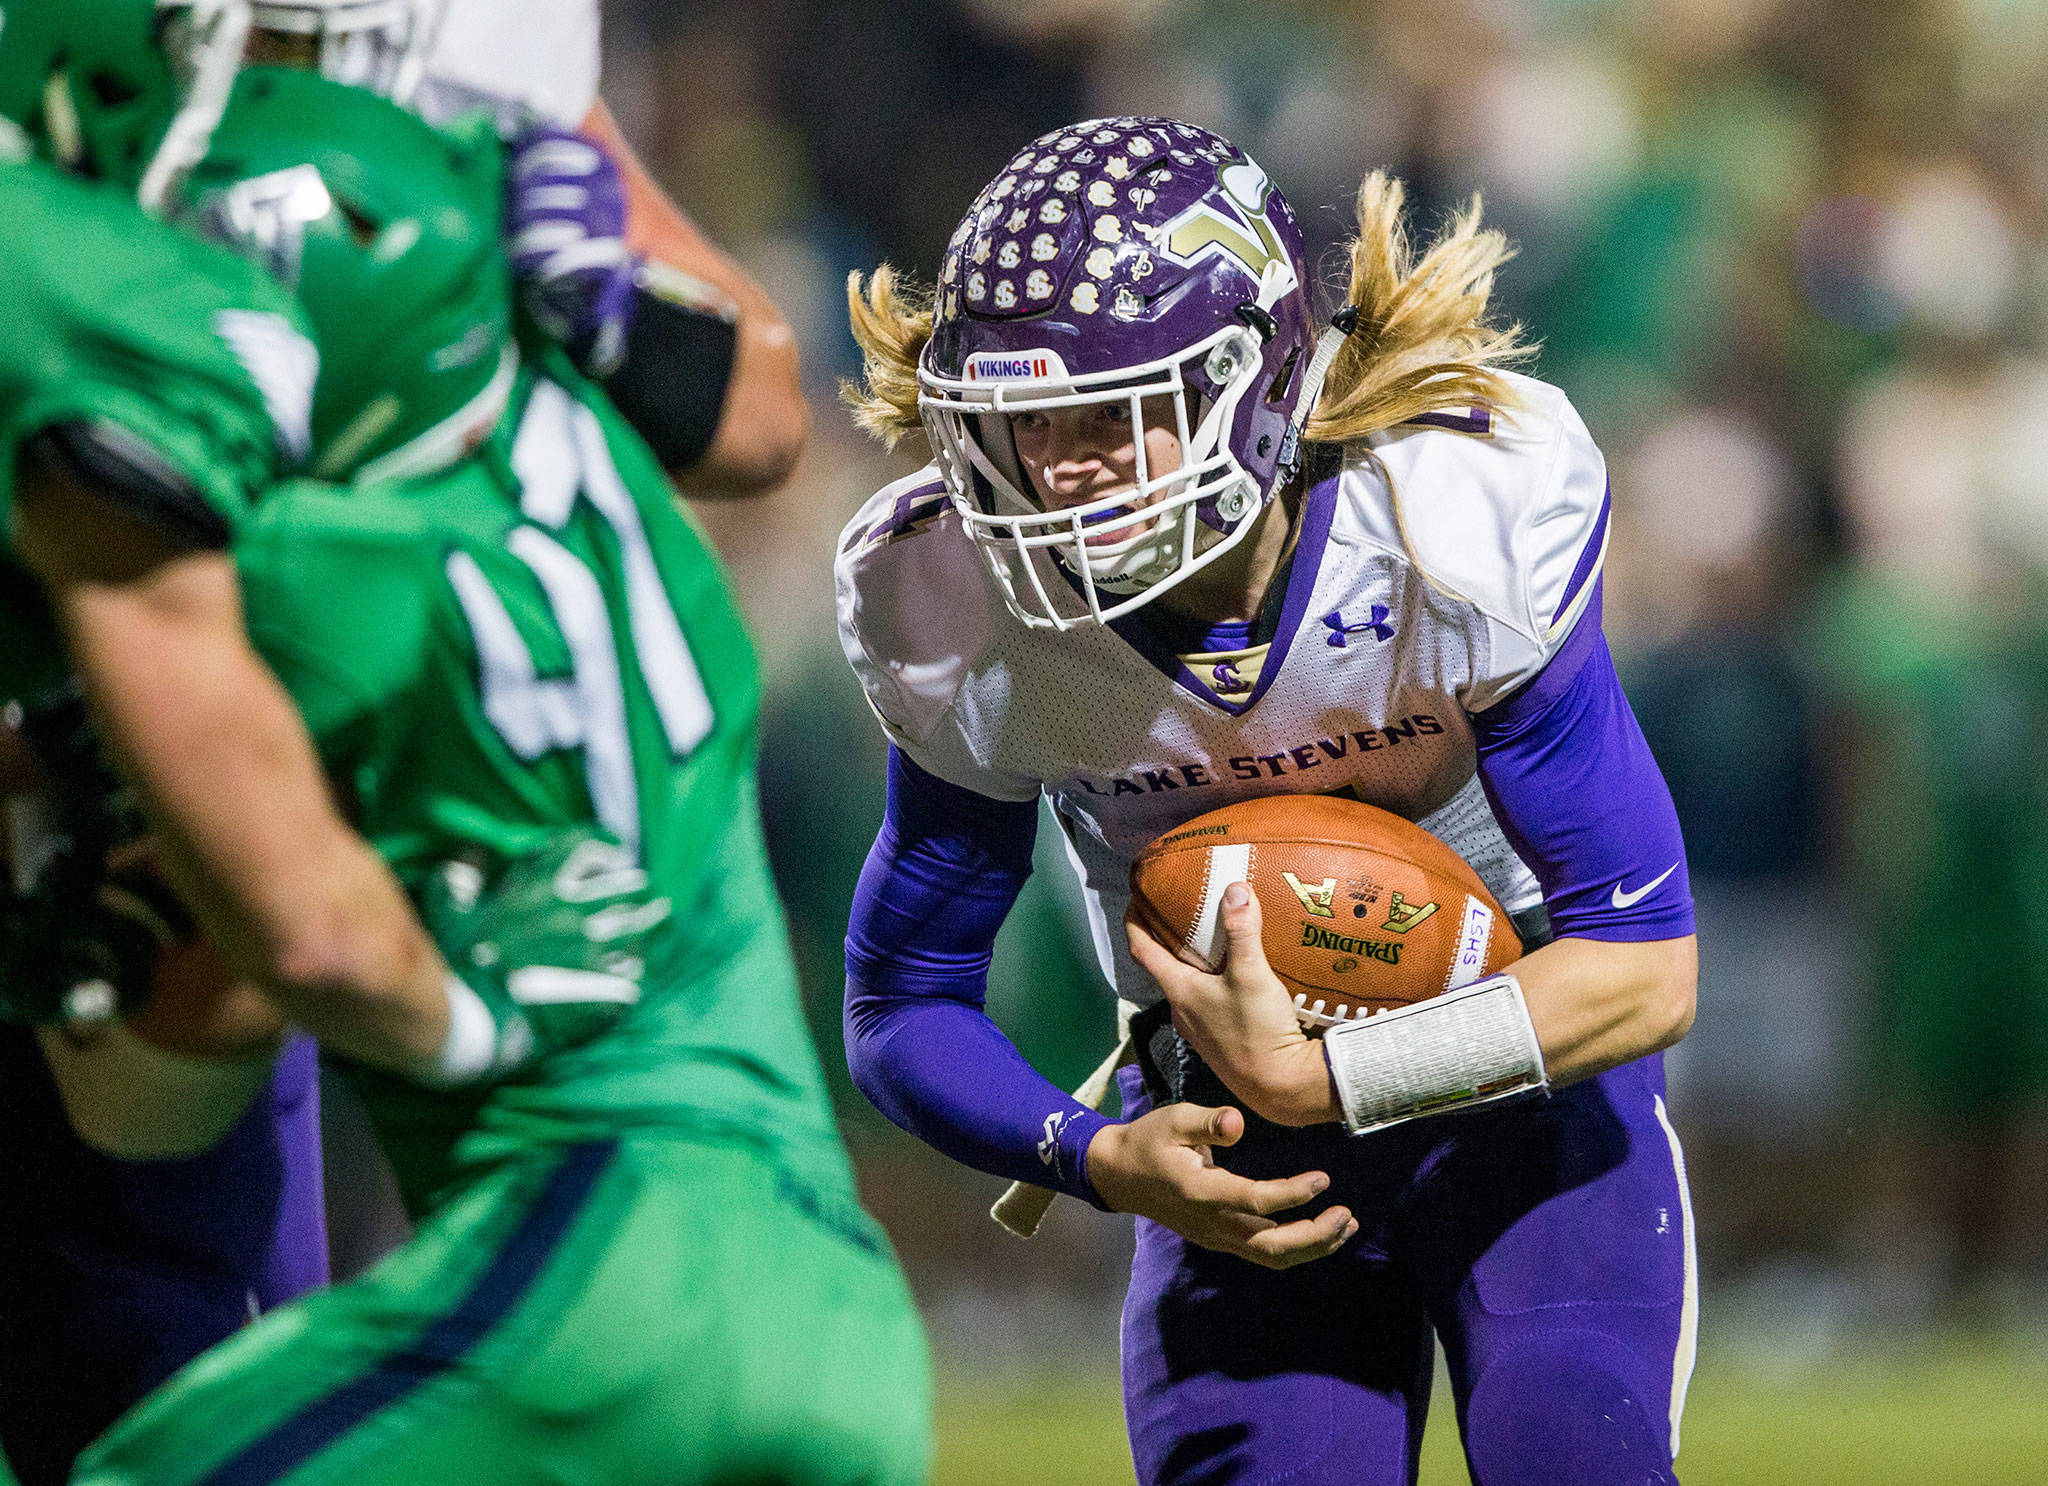 Lake Stevens' Tre Long runs the ball during the Class 4A state state semifinal game against Woodinville at Pop Keeney Stadium on Nov. 24 in Bothell. (Olivia Vanni / The Herald)